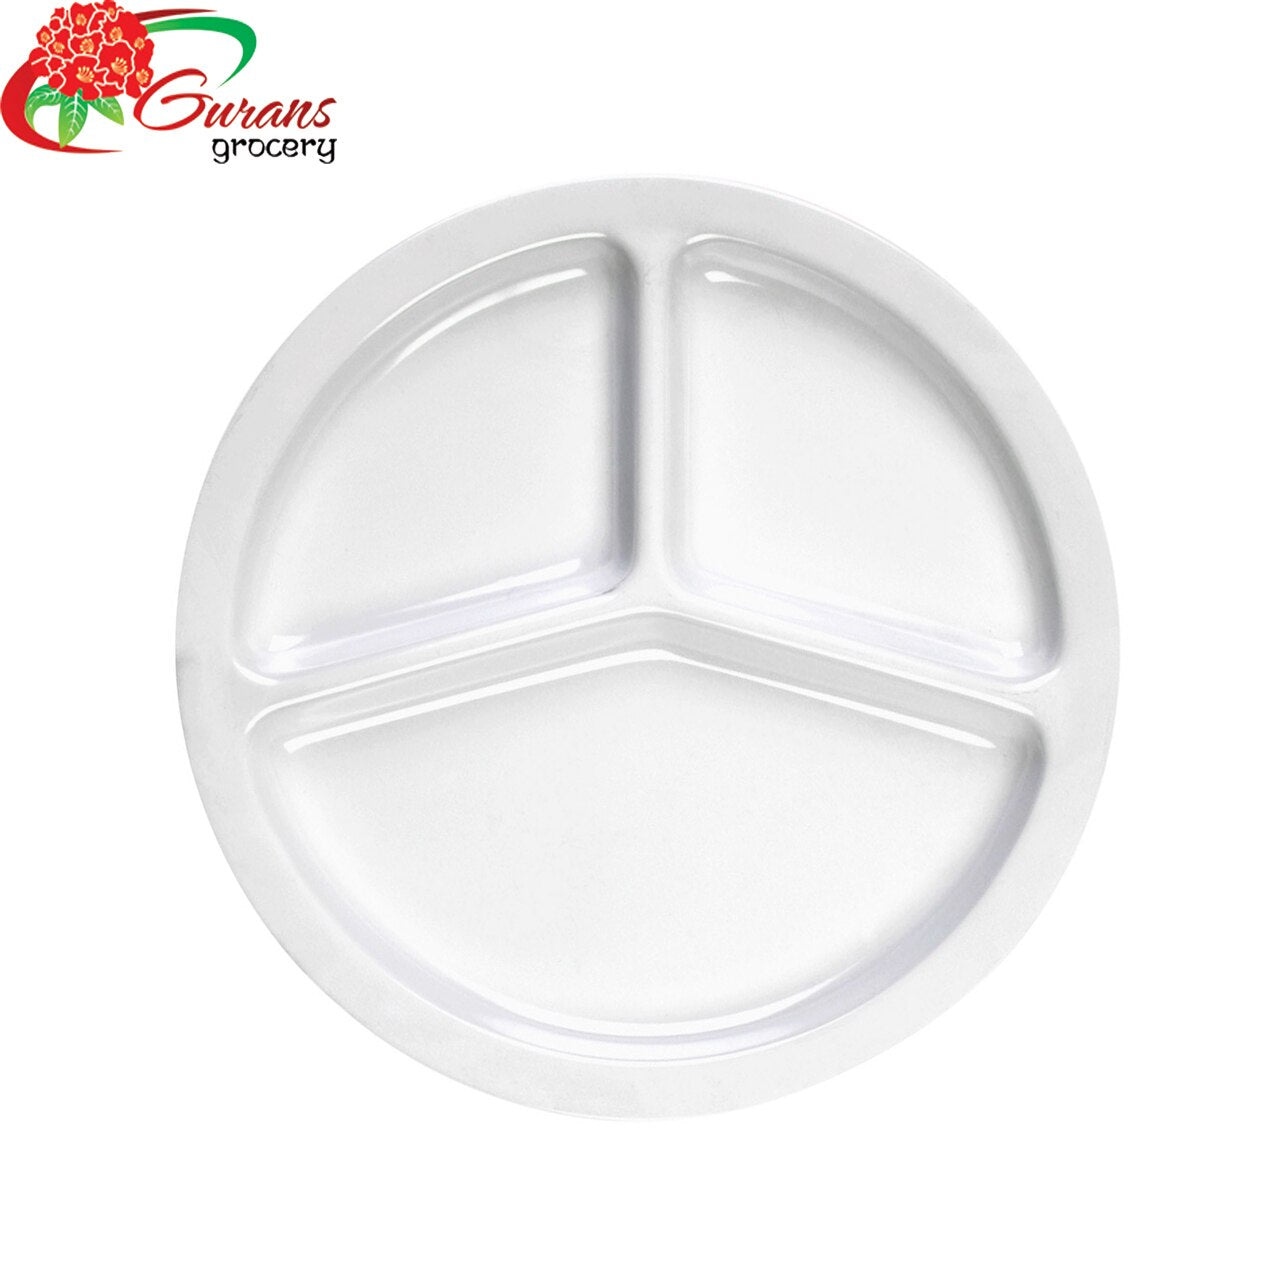 "10"" Plastic Compartment Dinner Plate 50pcs"